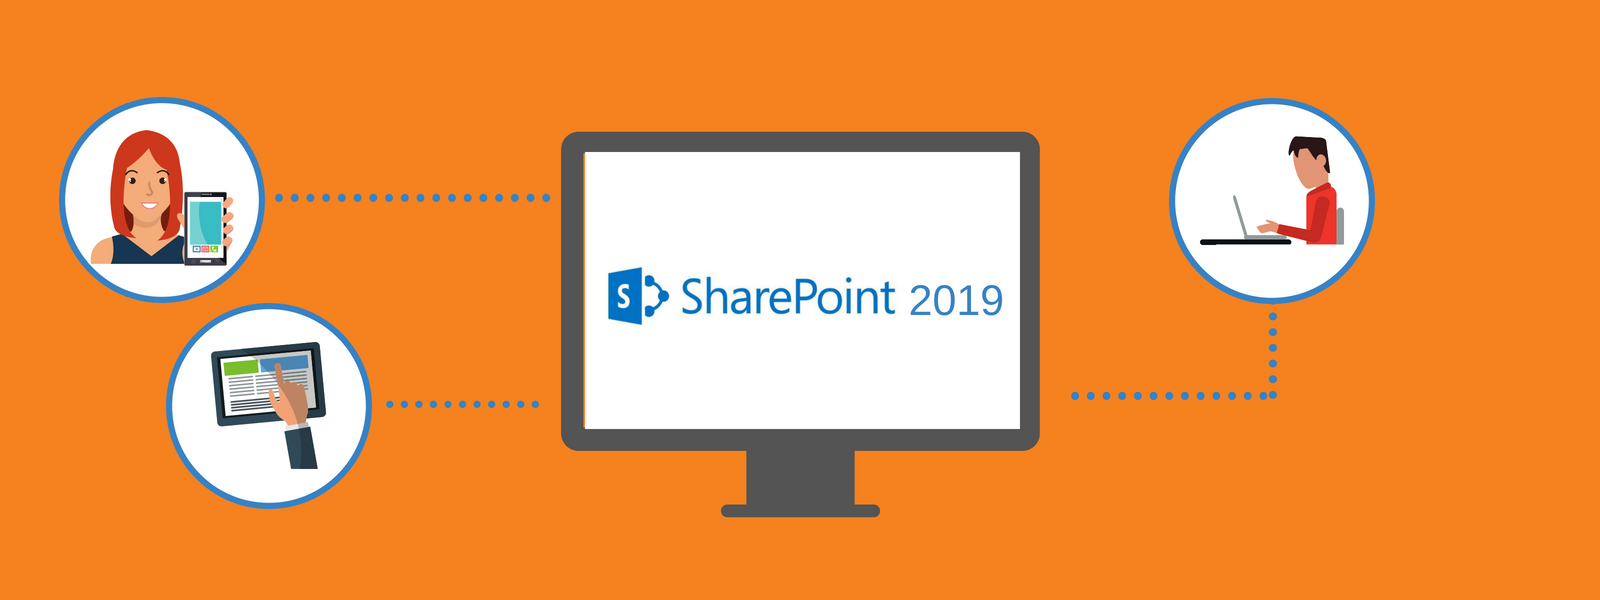 Top 5 highlights of Microsoft SharePoint 2019